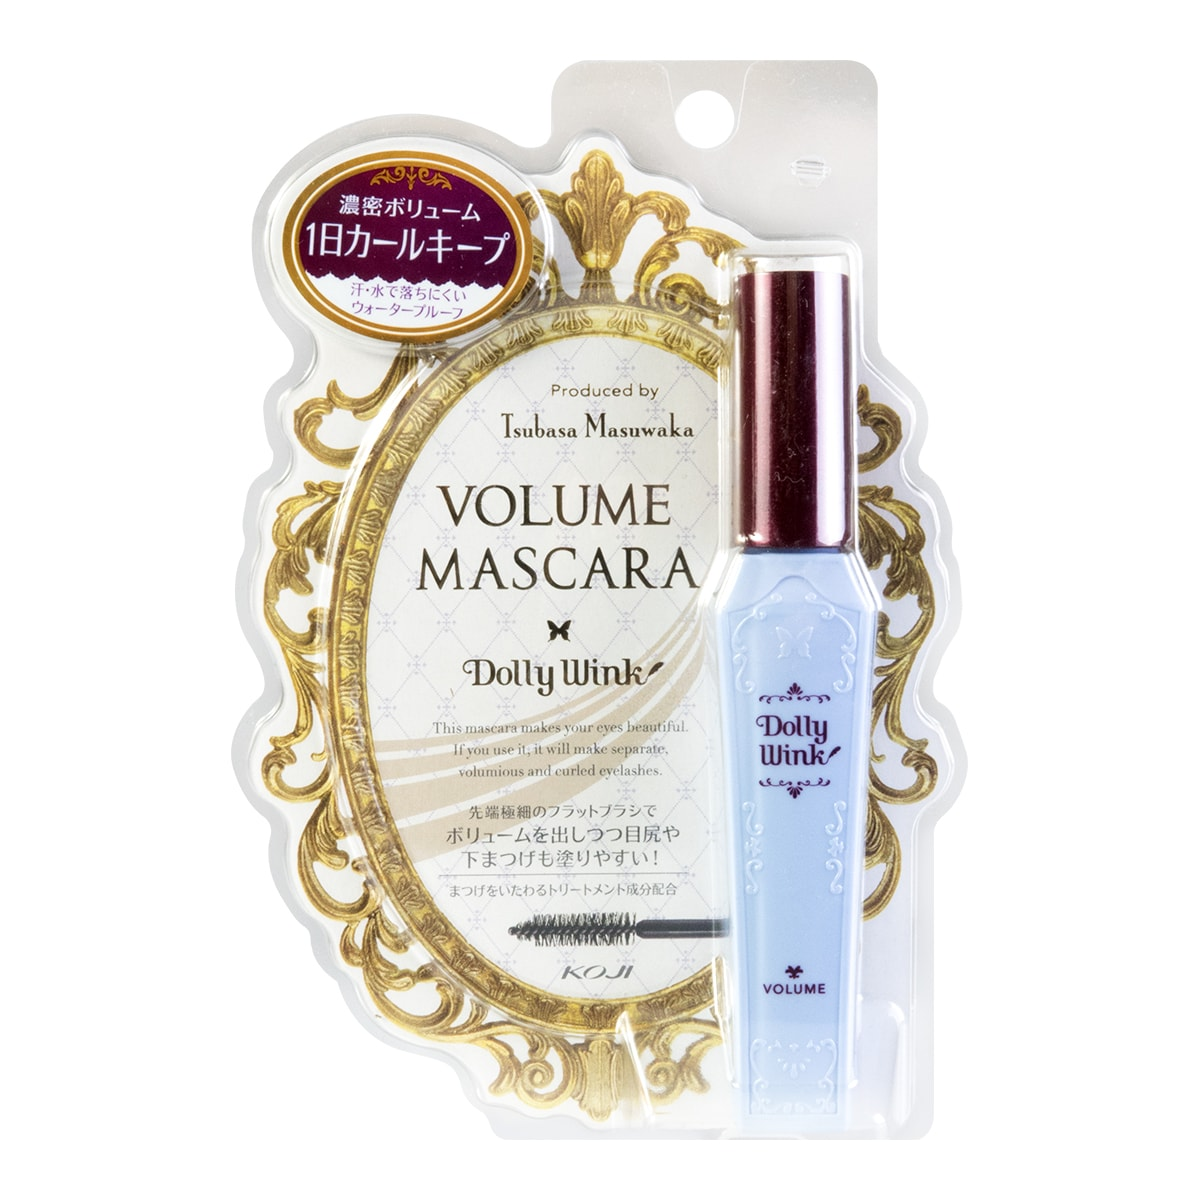 KOJI DOLLY WINK Volume Mascara #Black